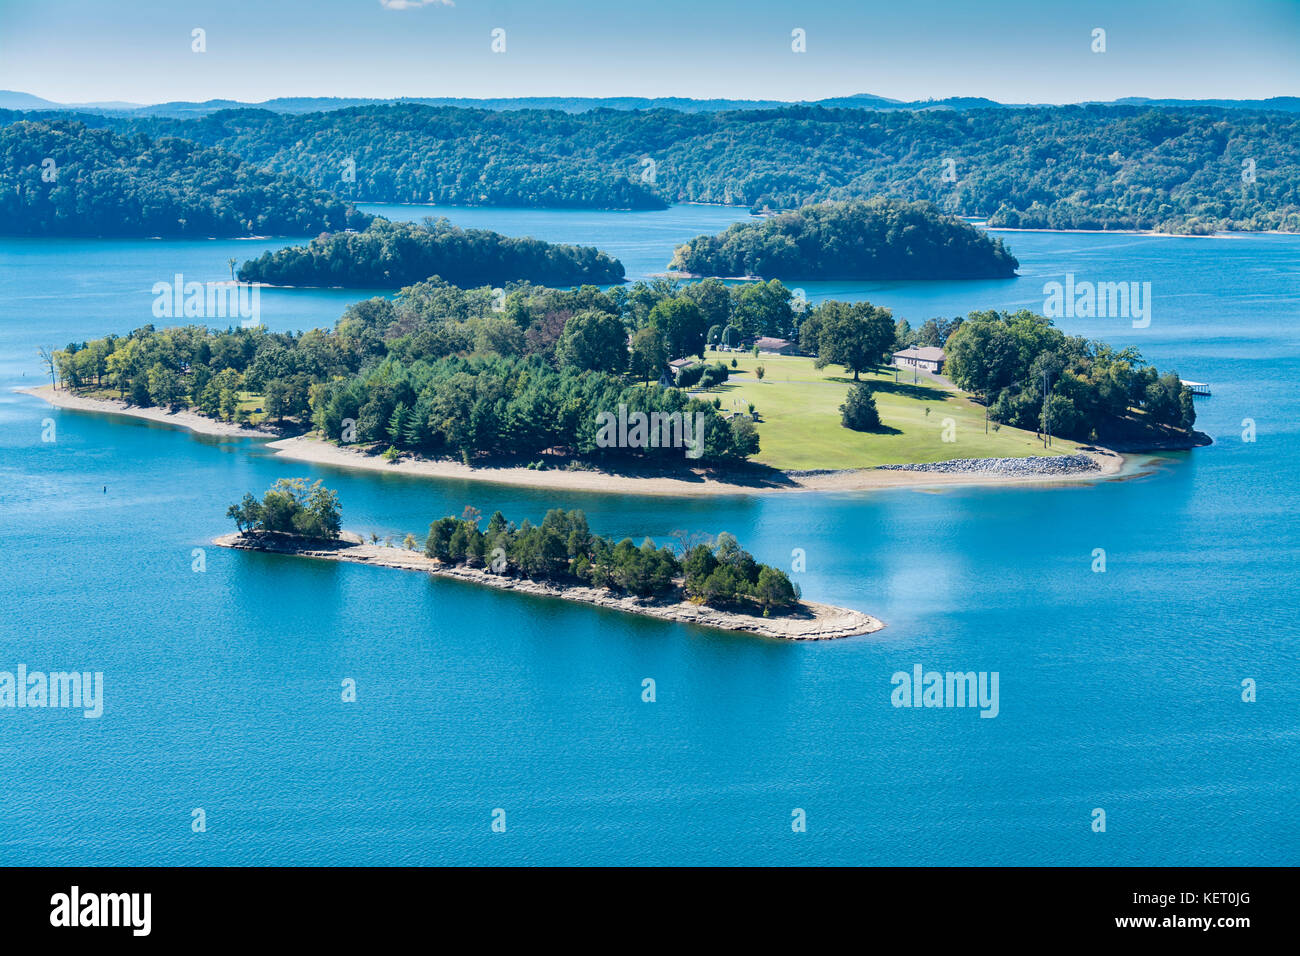 Dale Hollow Lake State Resort Park in Kentucky, USA Stock Photo